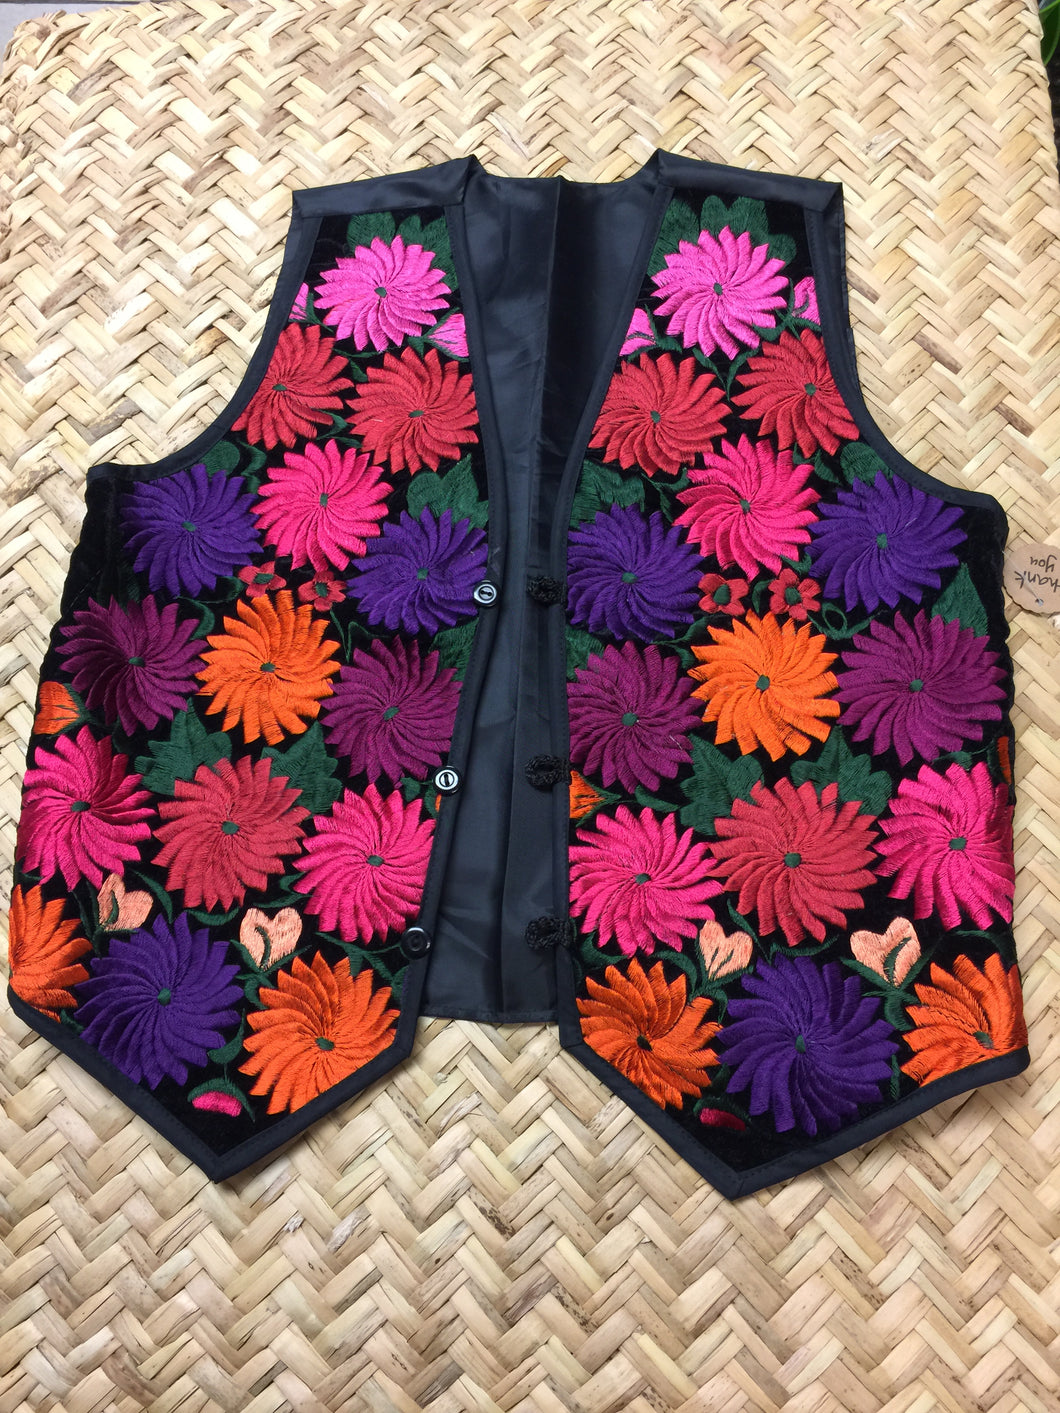 Embroidery vest from Chiapas